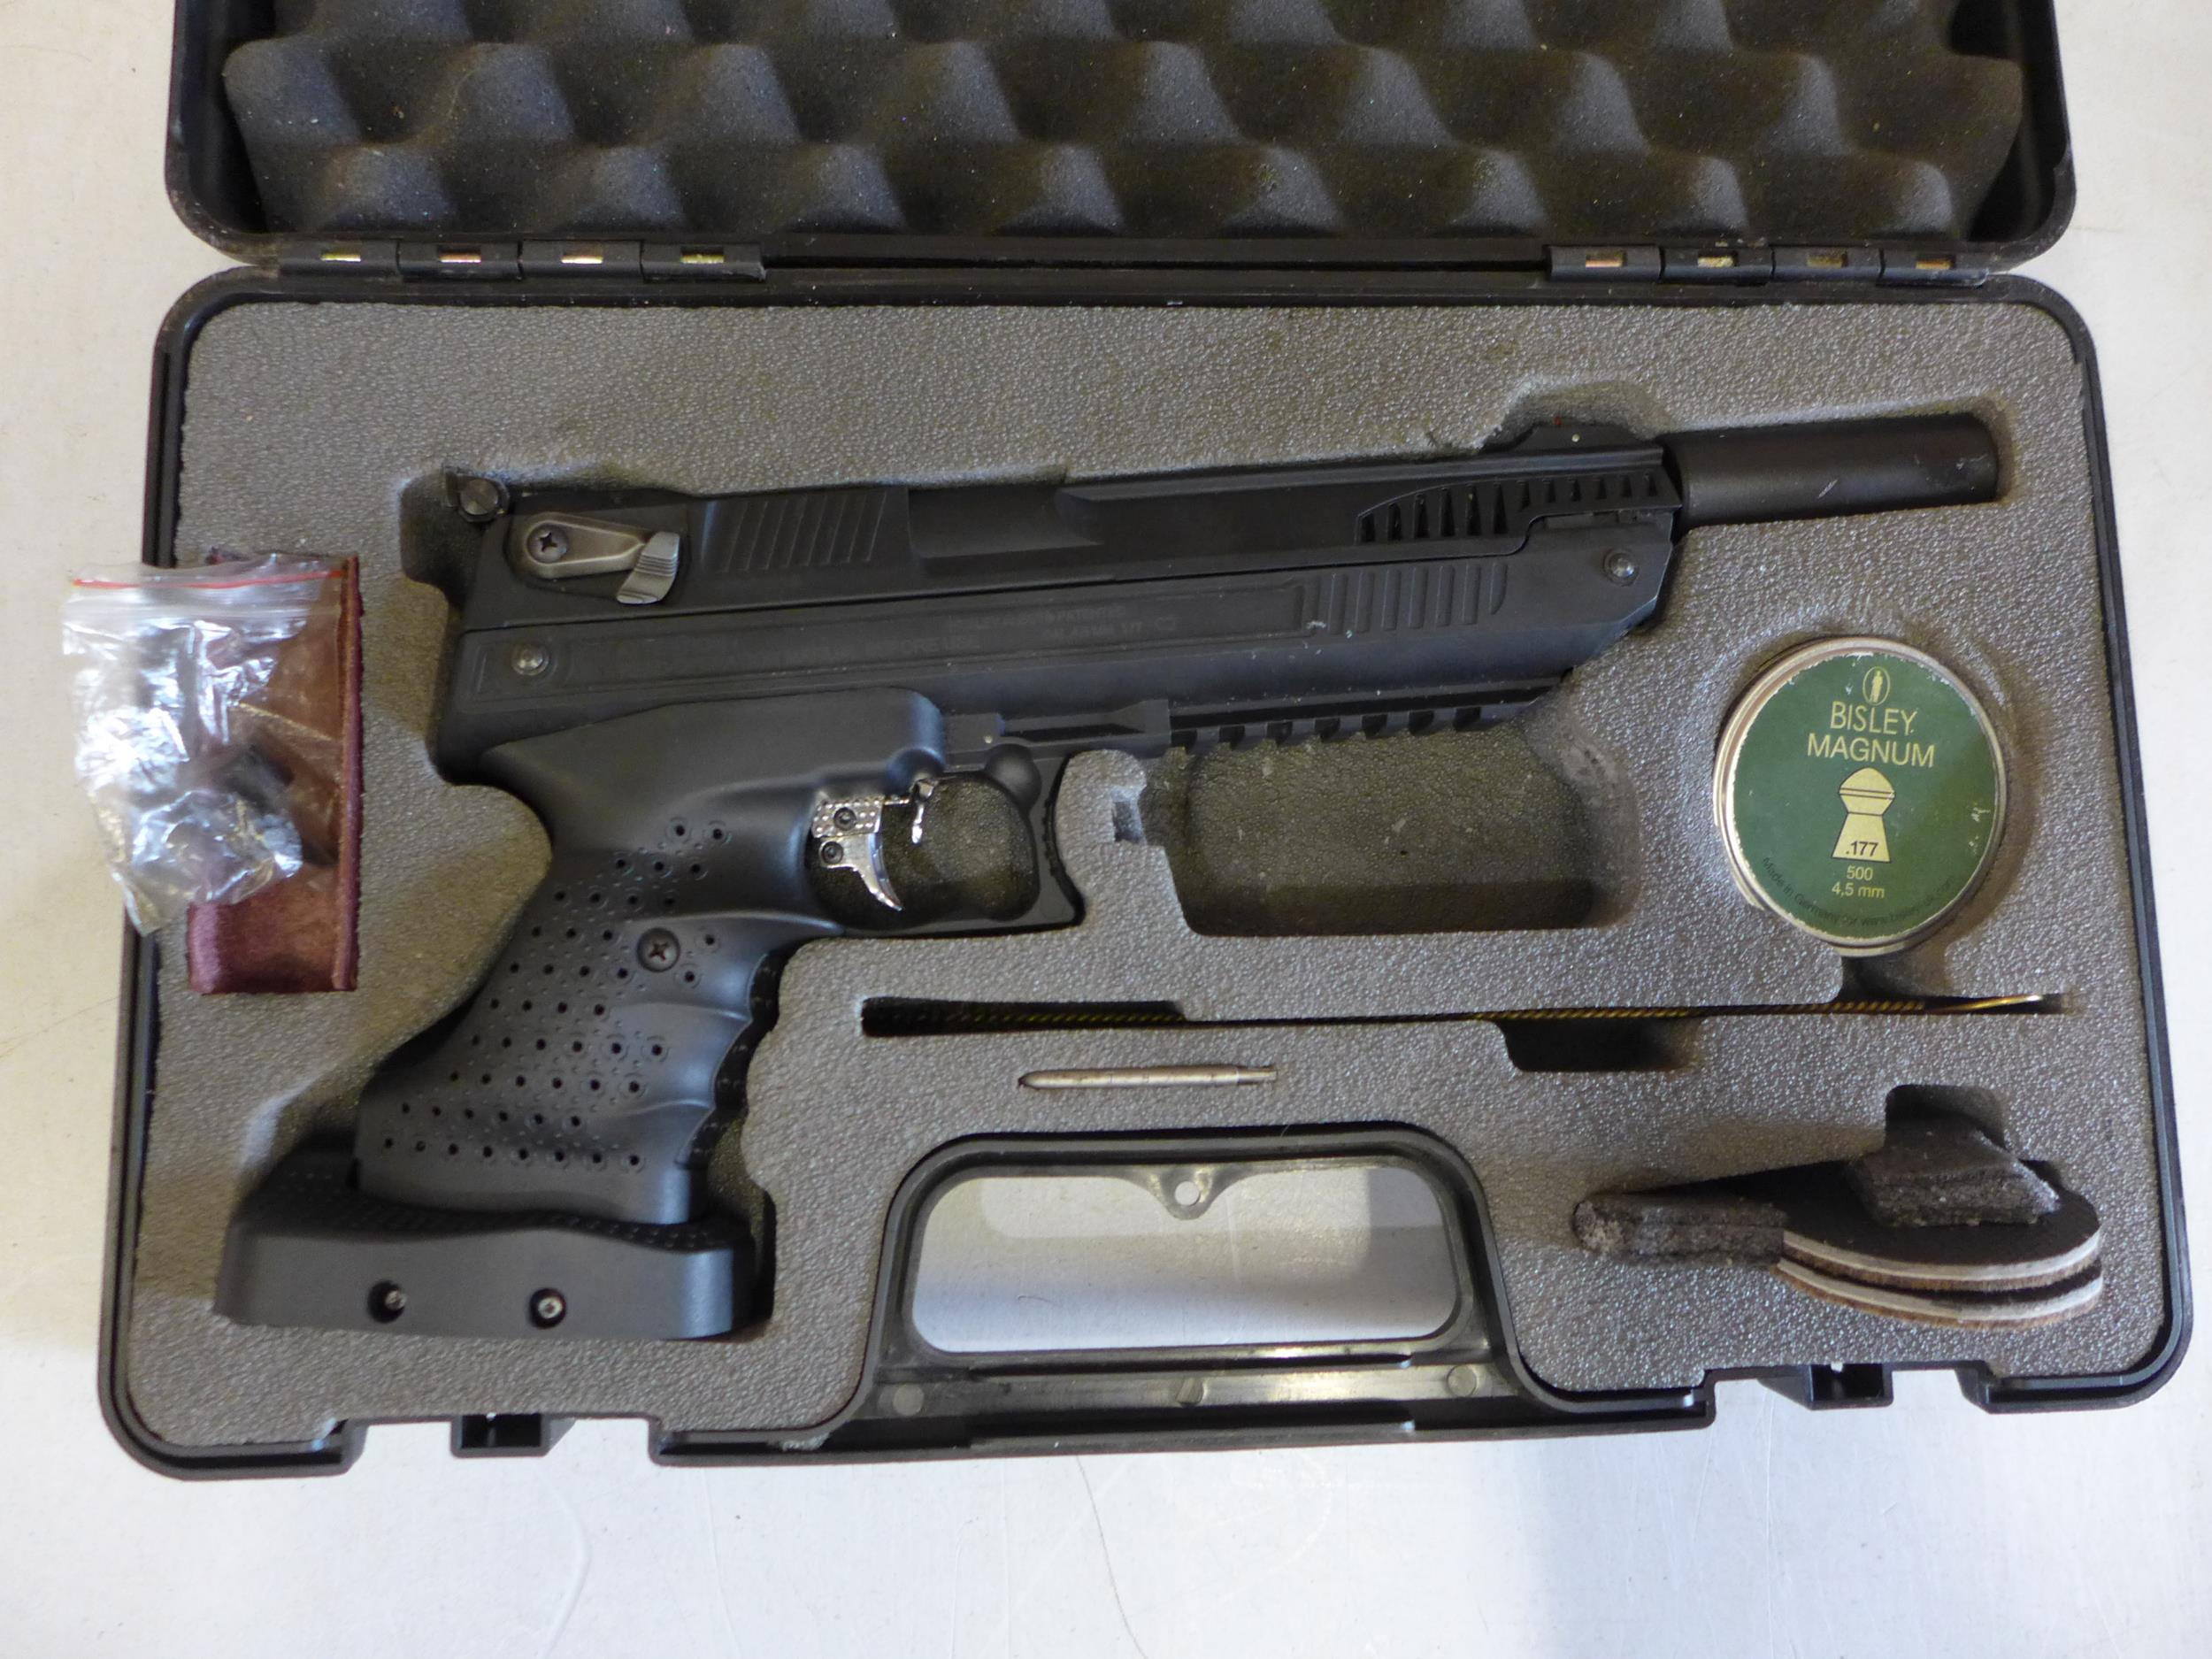 A CASED WEBLEY ALECT .177 CALIBRE AIR PISTOL, WITH SCREW ON SILENCER AND A TIN OF PELLETS